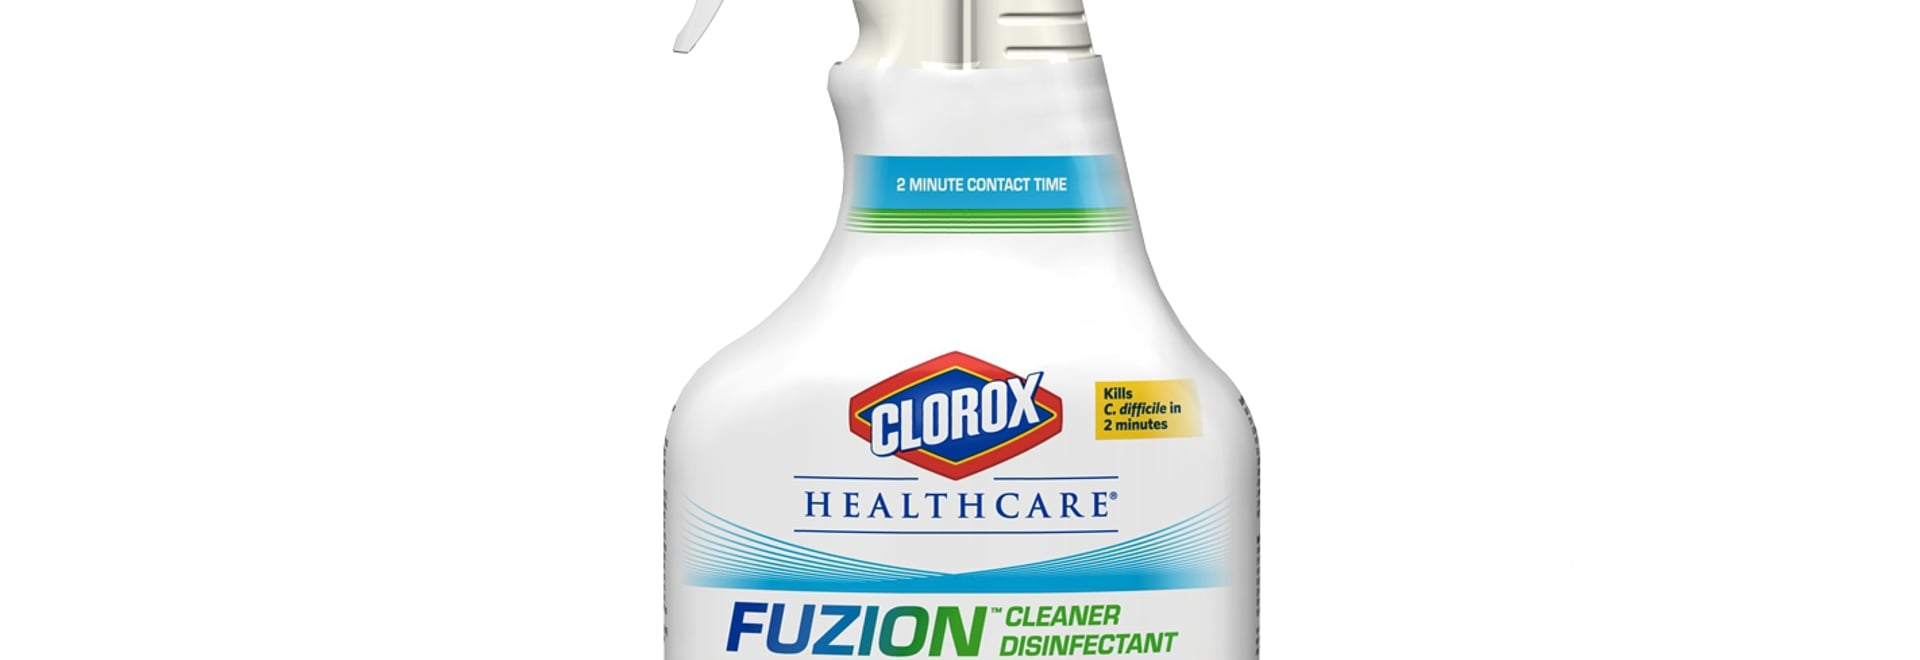 Clorox Healthcare Introduces the Next Generation of Bleach